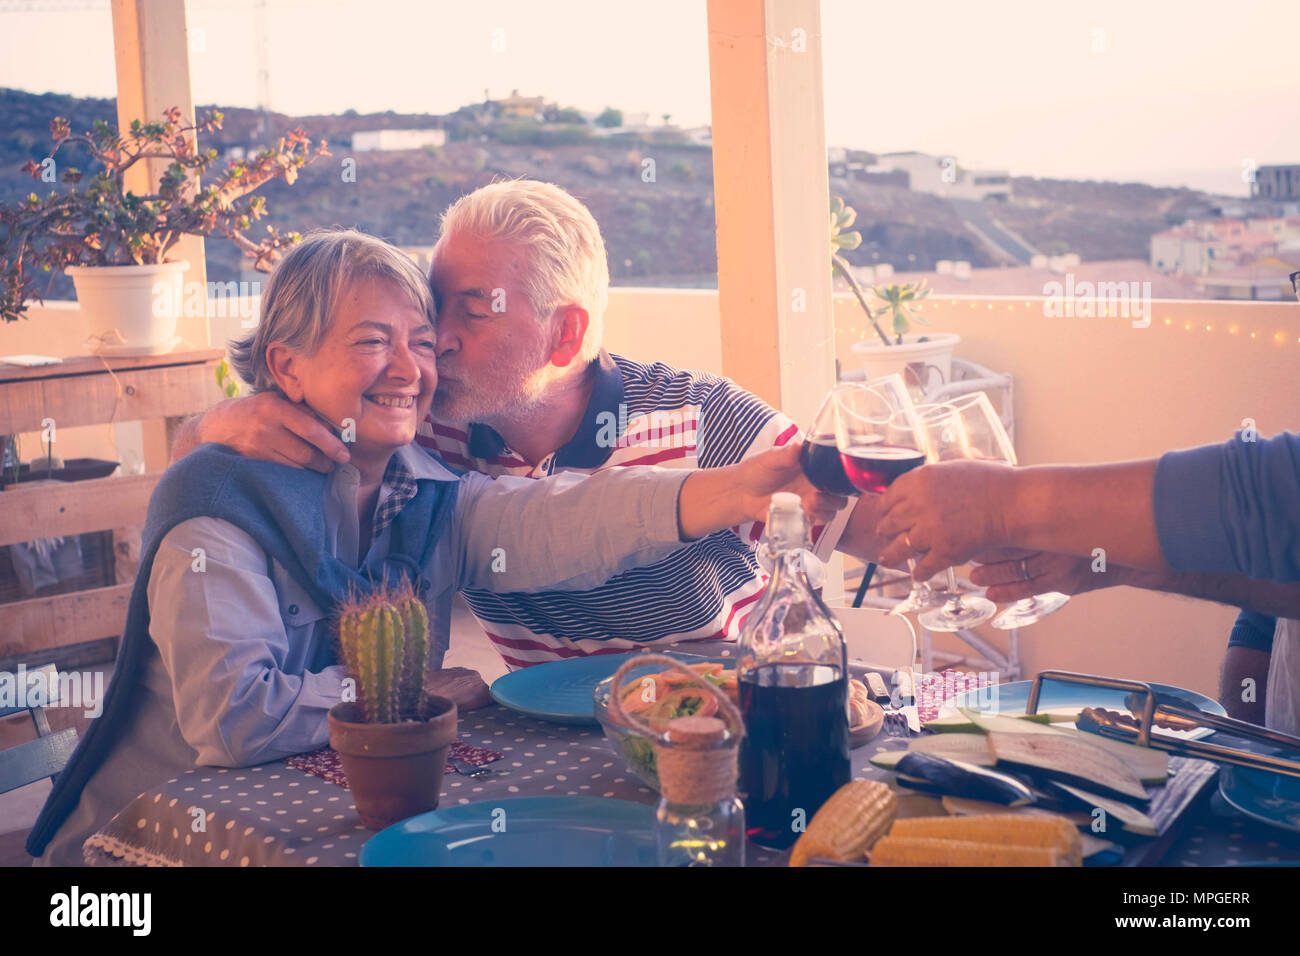 group of aged senior friends adults having dinner and doing party nice time in the rooftop terrace outdoor with wine and food. having fun and kiss  du - Stock Image